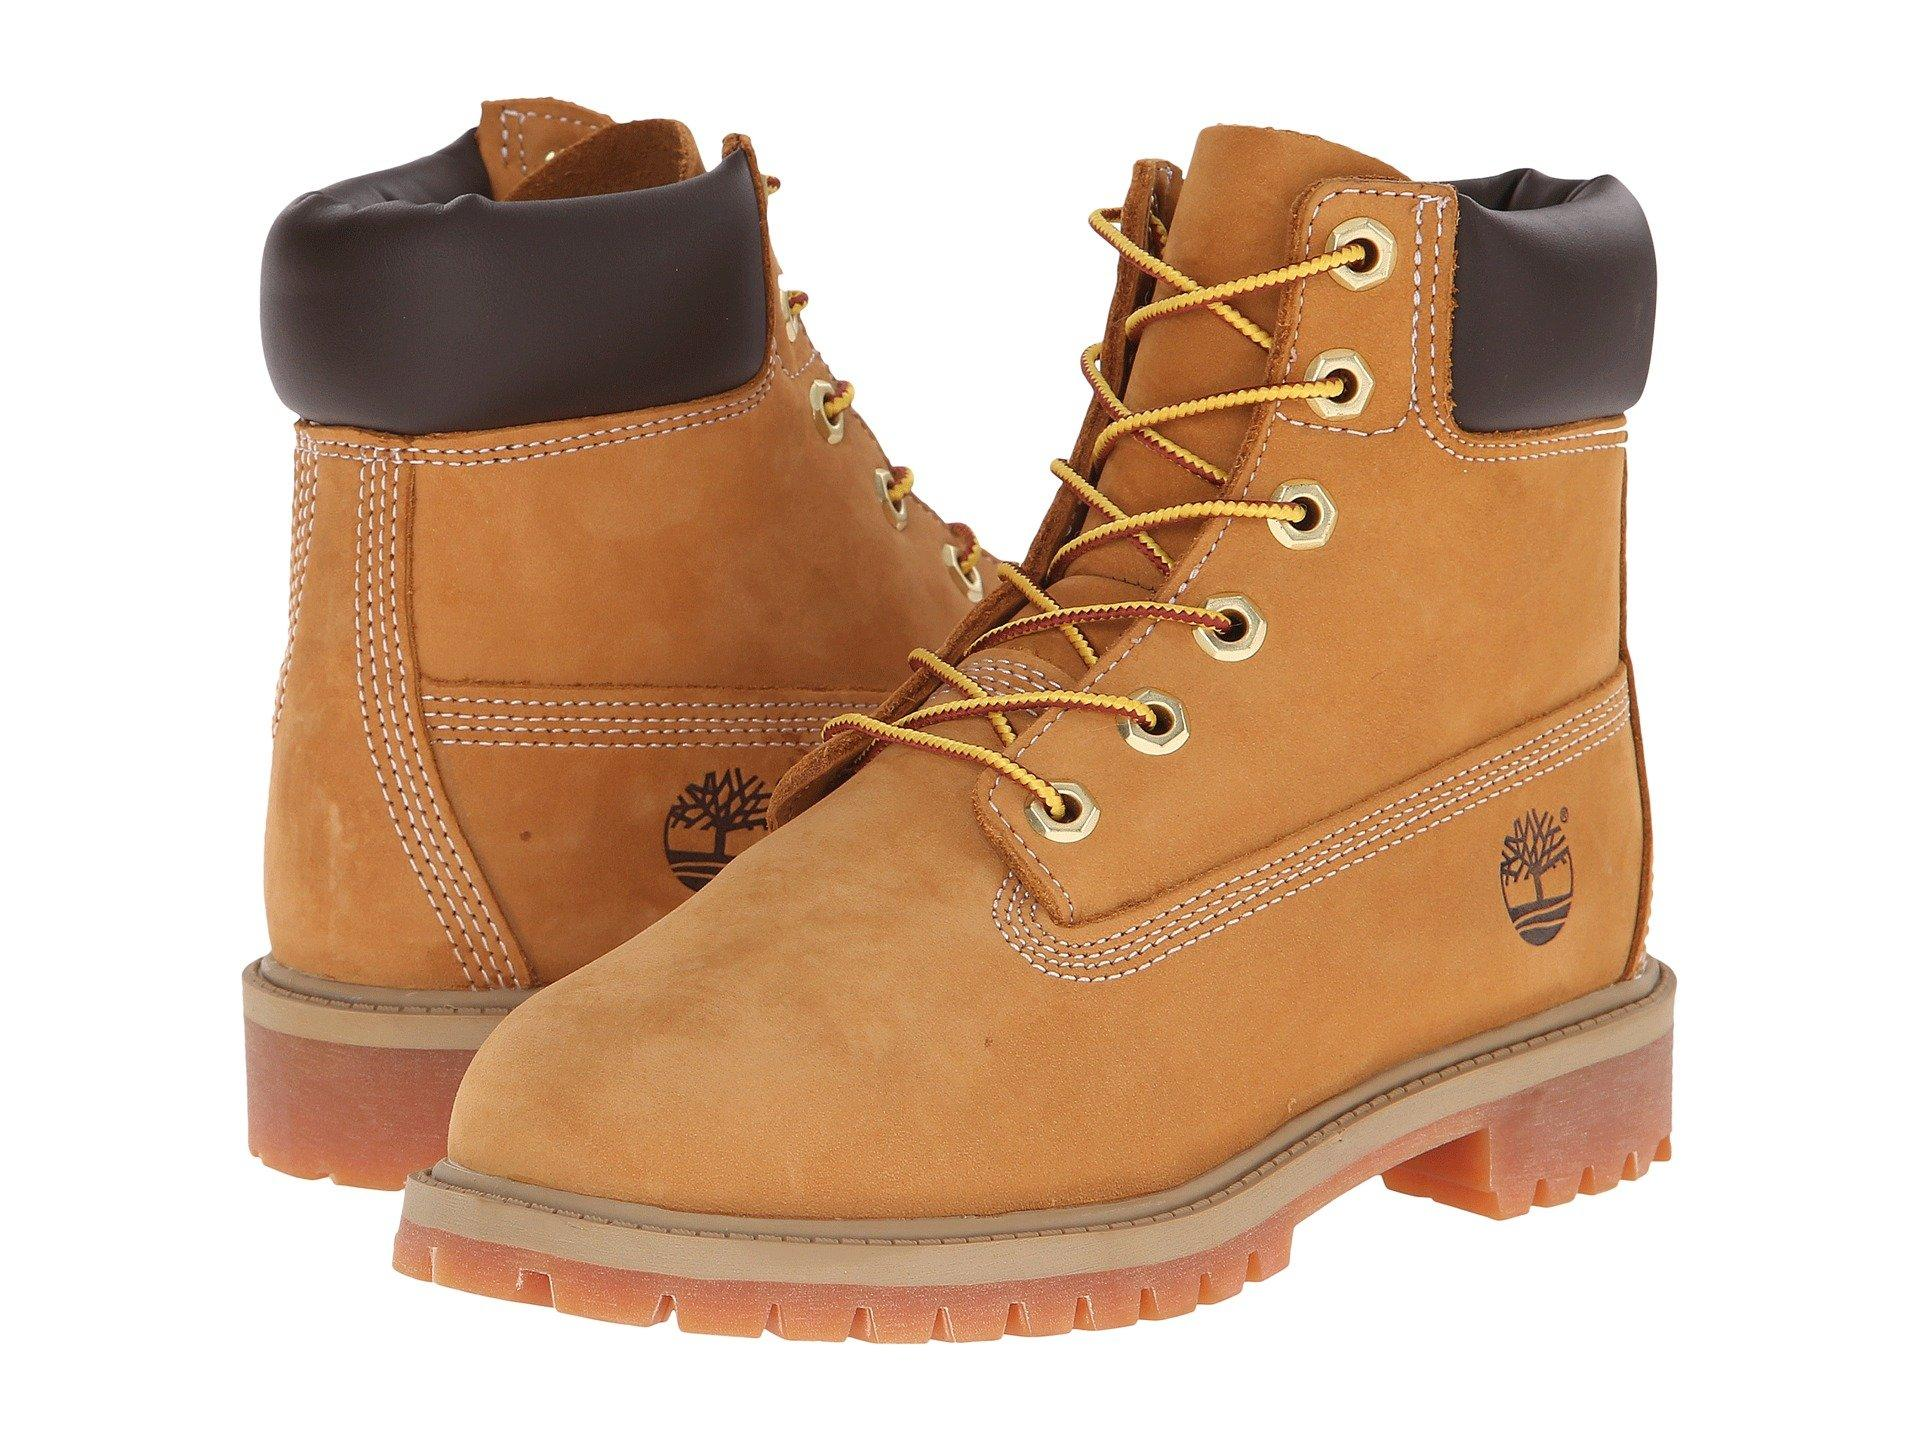 Timberland Boots   Shoes  088d1beb6